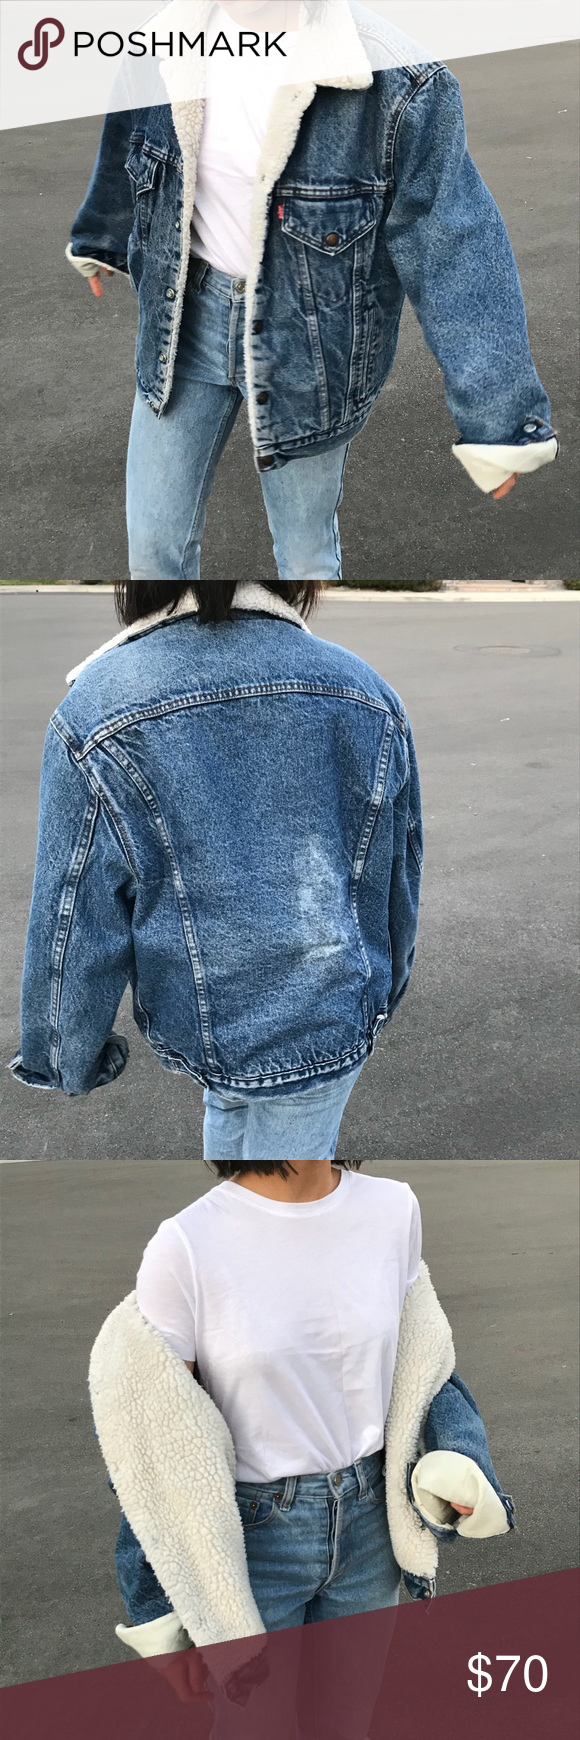 Vintage levius denim jacket with fur collar levis jacket fur